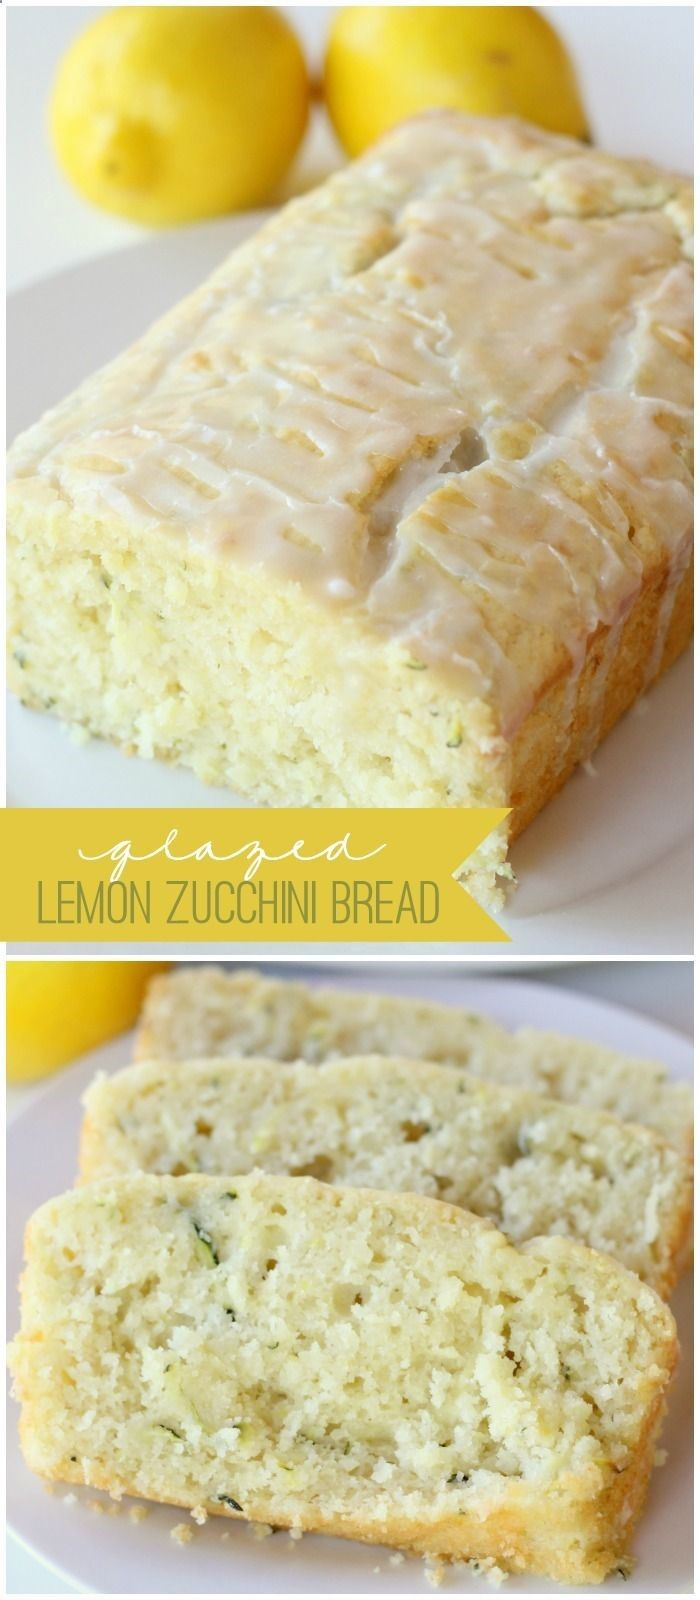 Glazed Lemon Zucchini Bread recipe.